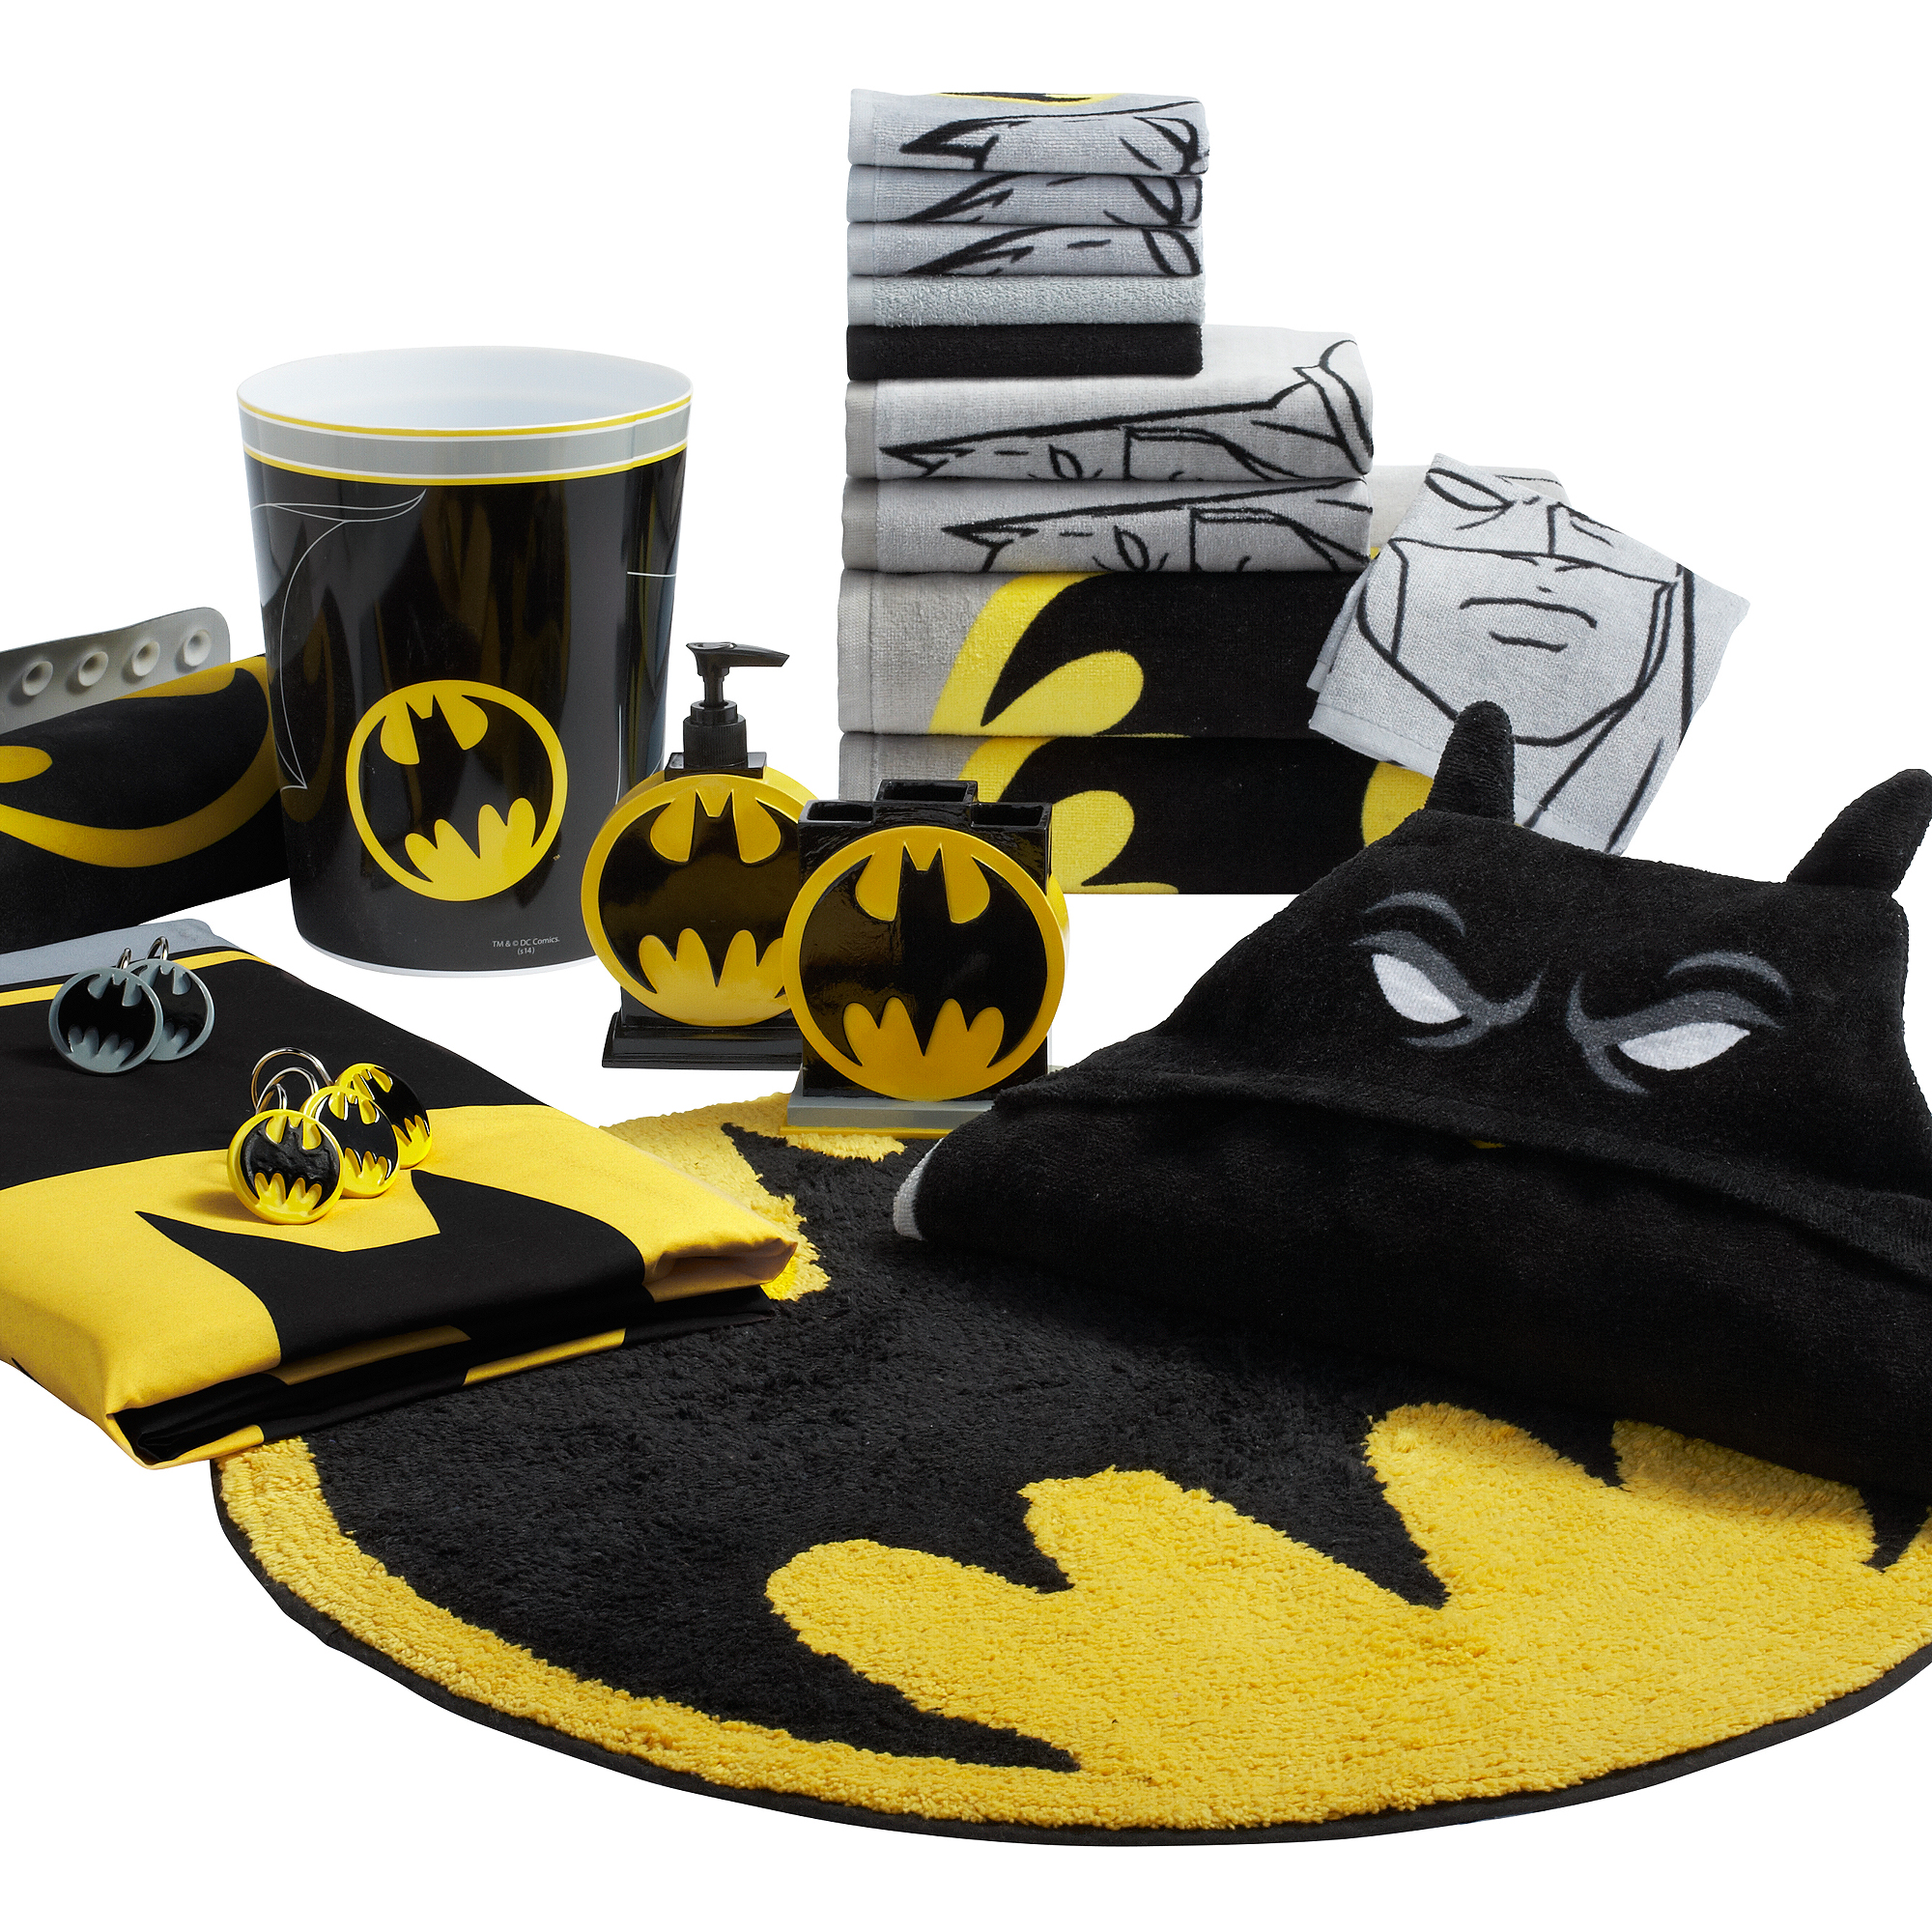 . Batman Logo Bath Lotion Pump   Walmart com